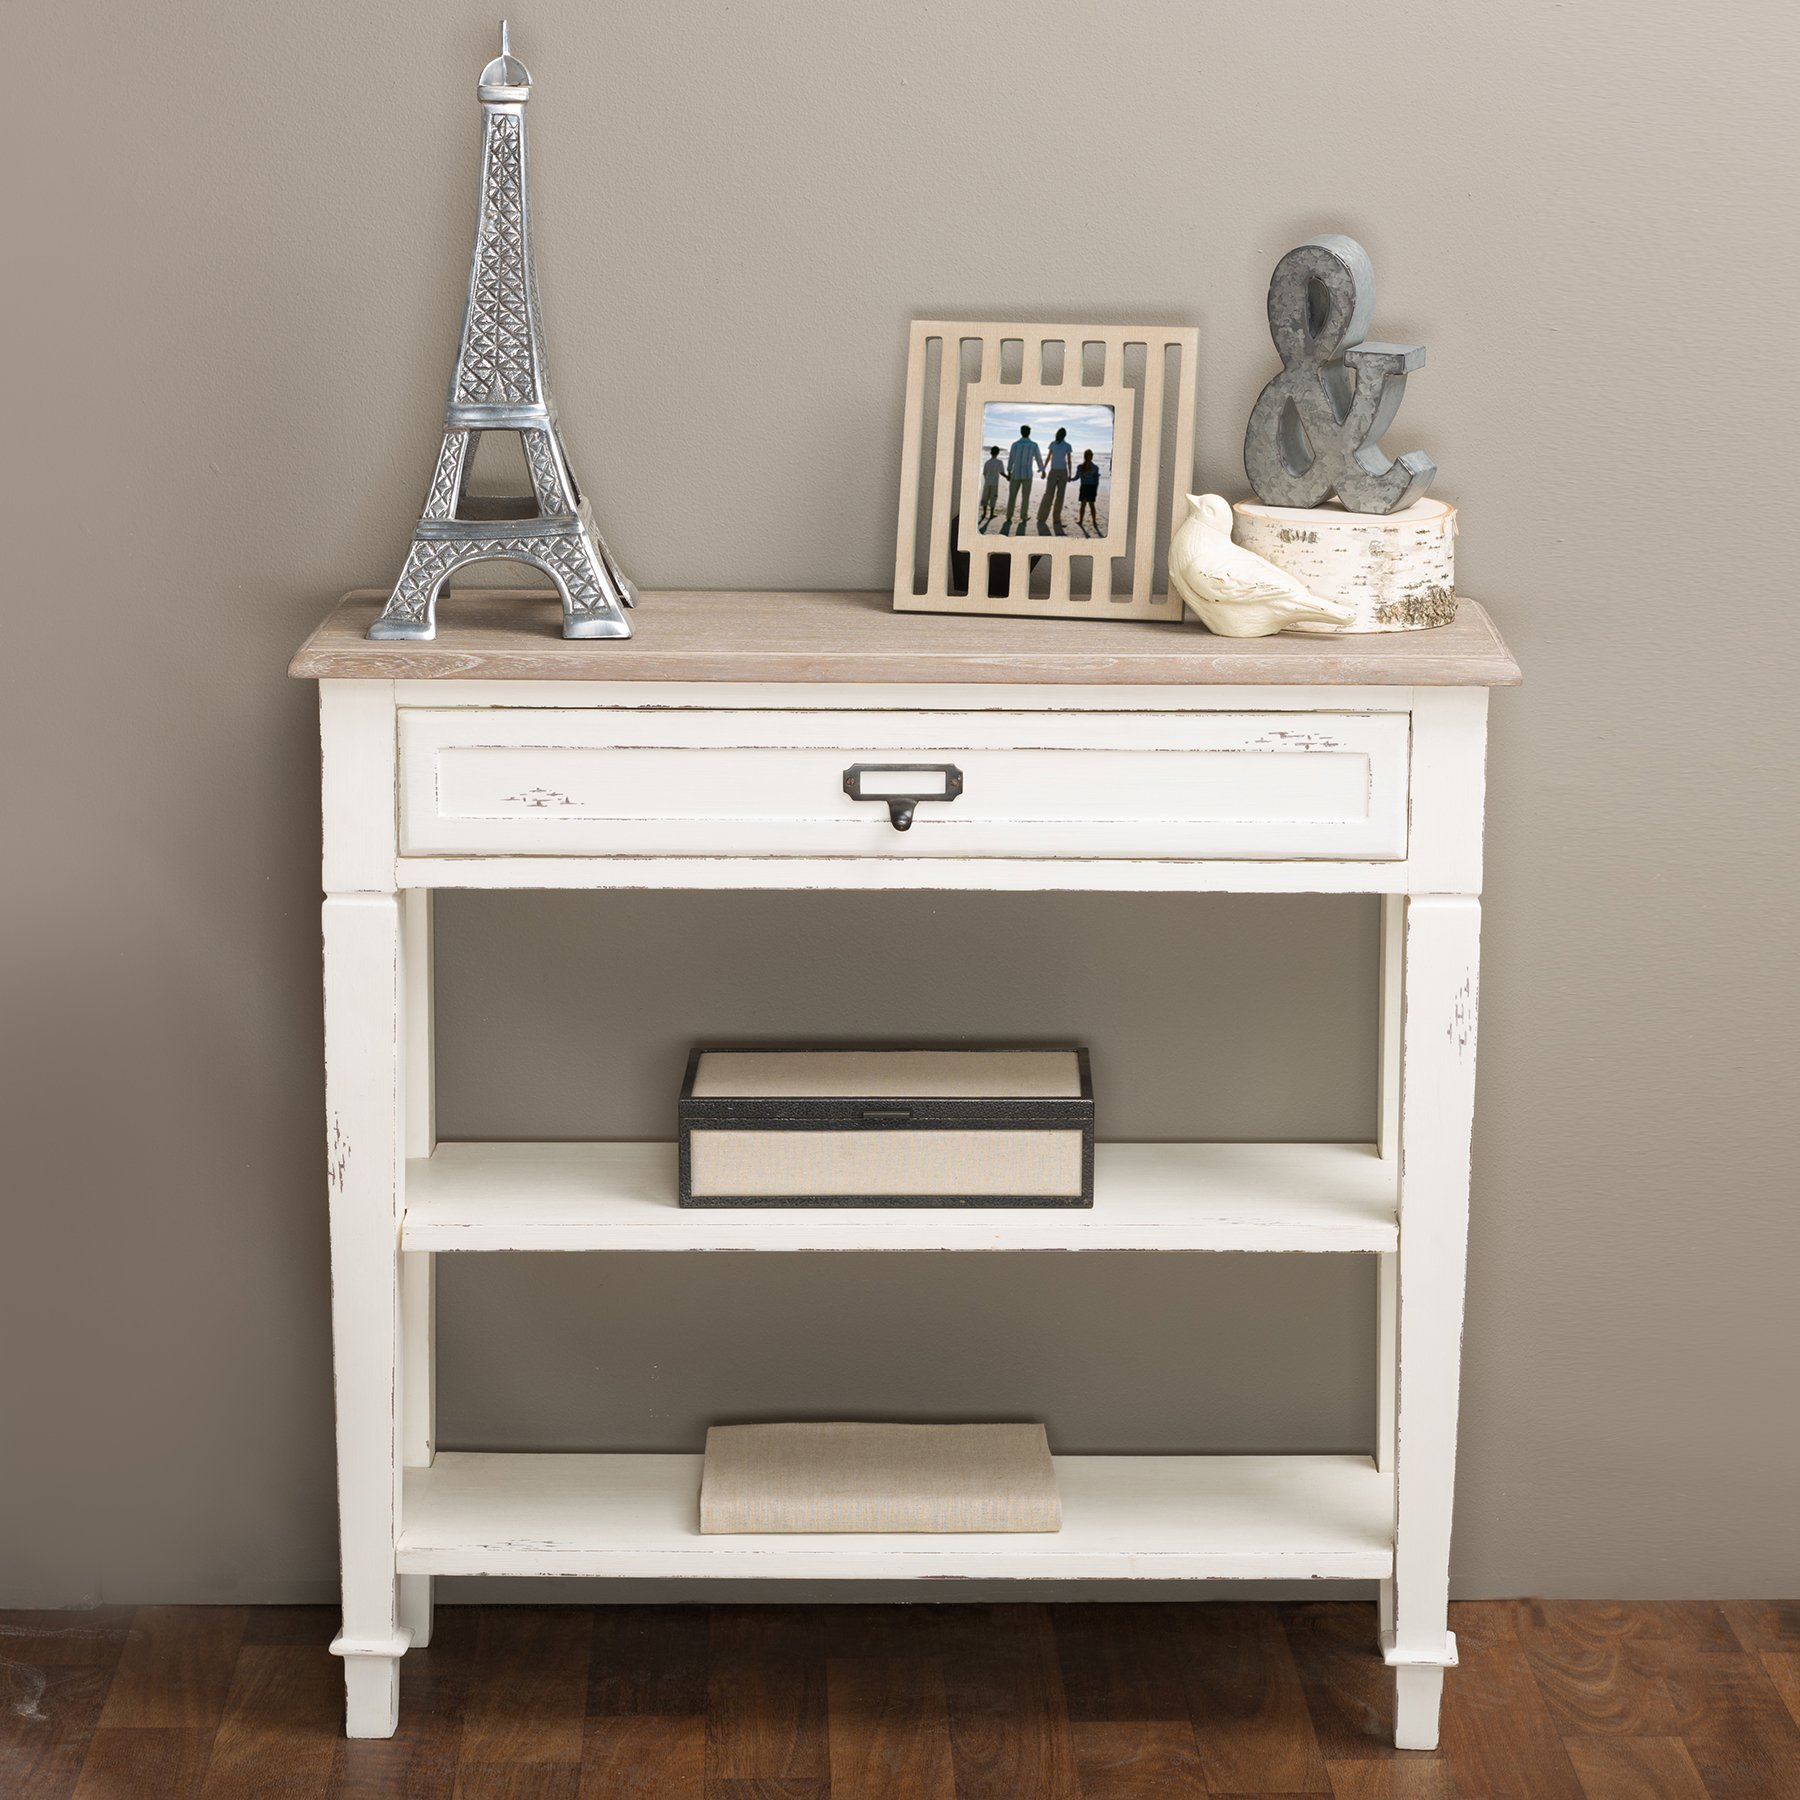 Baxton Studio Dauphine Traditional French 1-Drawer Accent Console Table, White by Baxton Studio